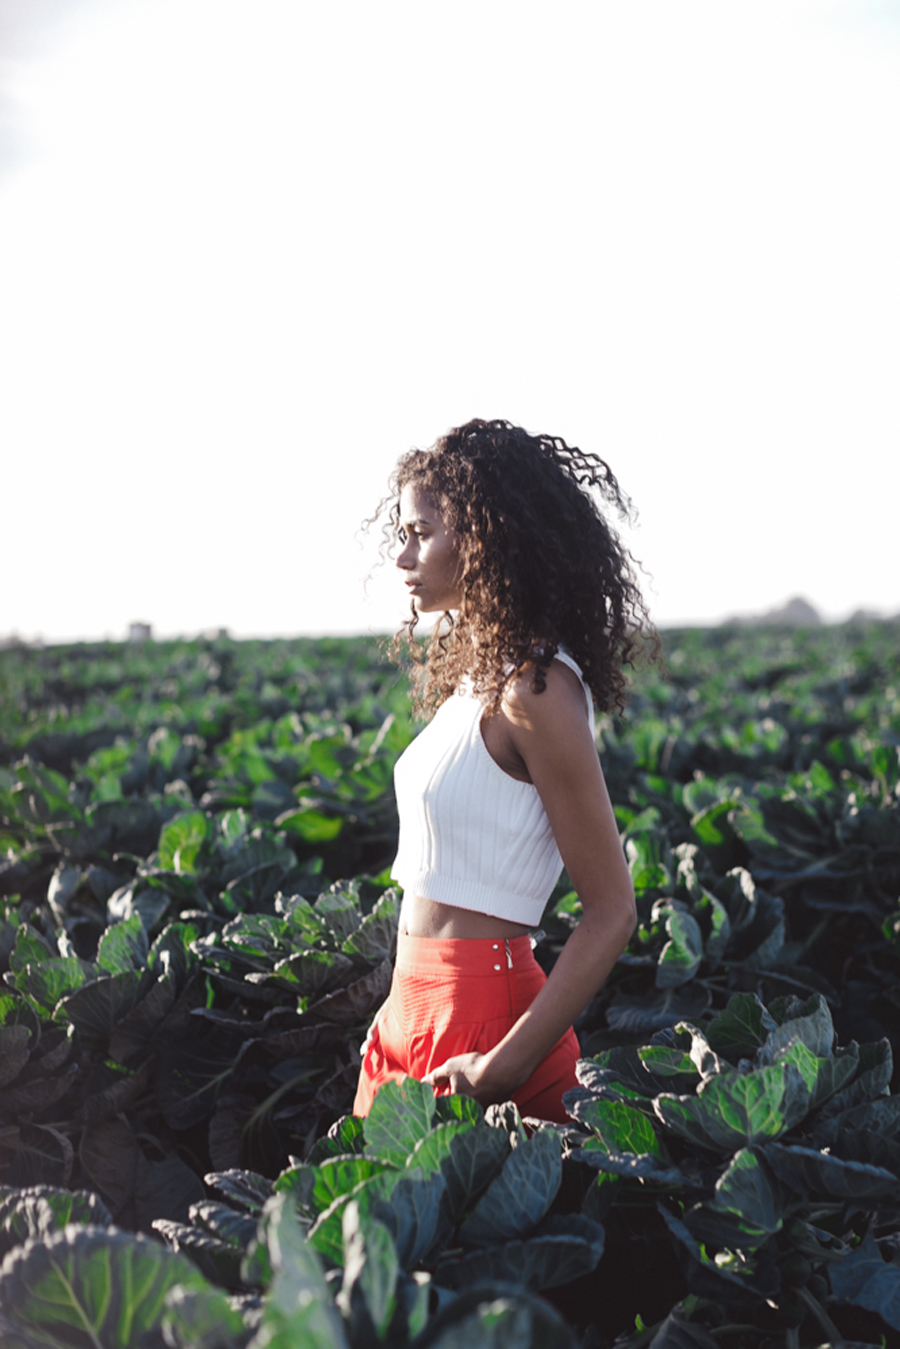 The start of real success with anything is knowledge, and today, we dive into selecting the best organic produce to fuel our ever-evolving bodies! -